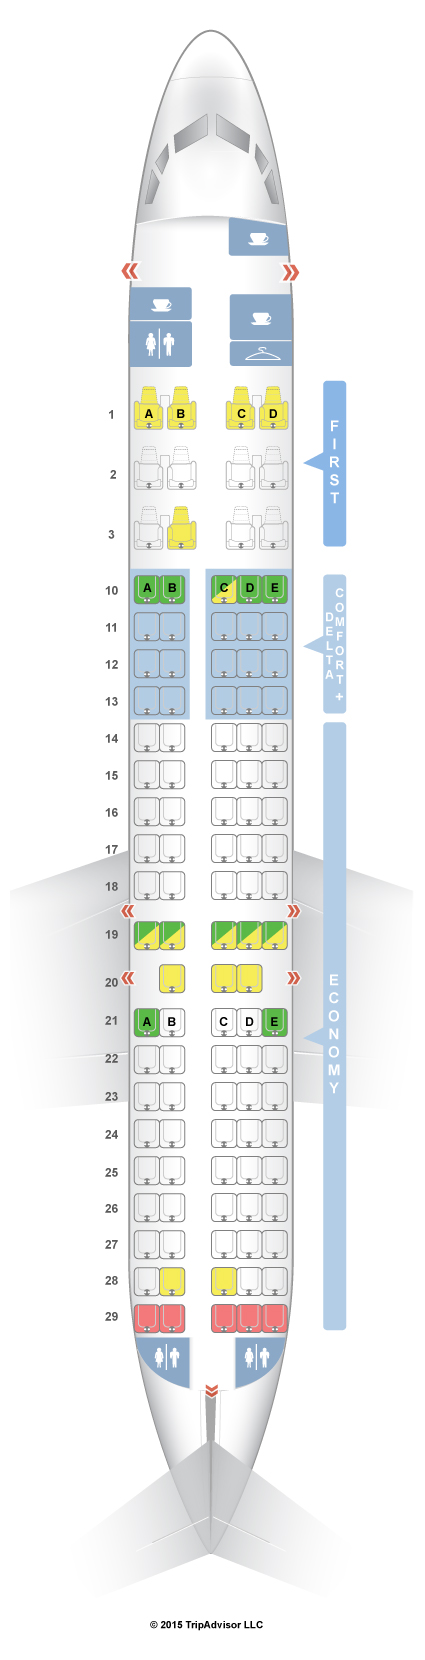 Delta airlines seating assignment